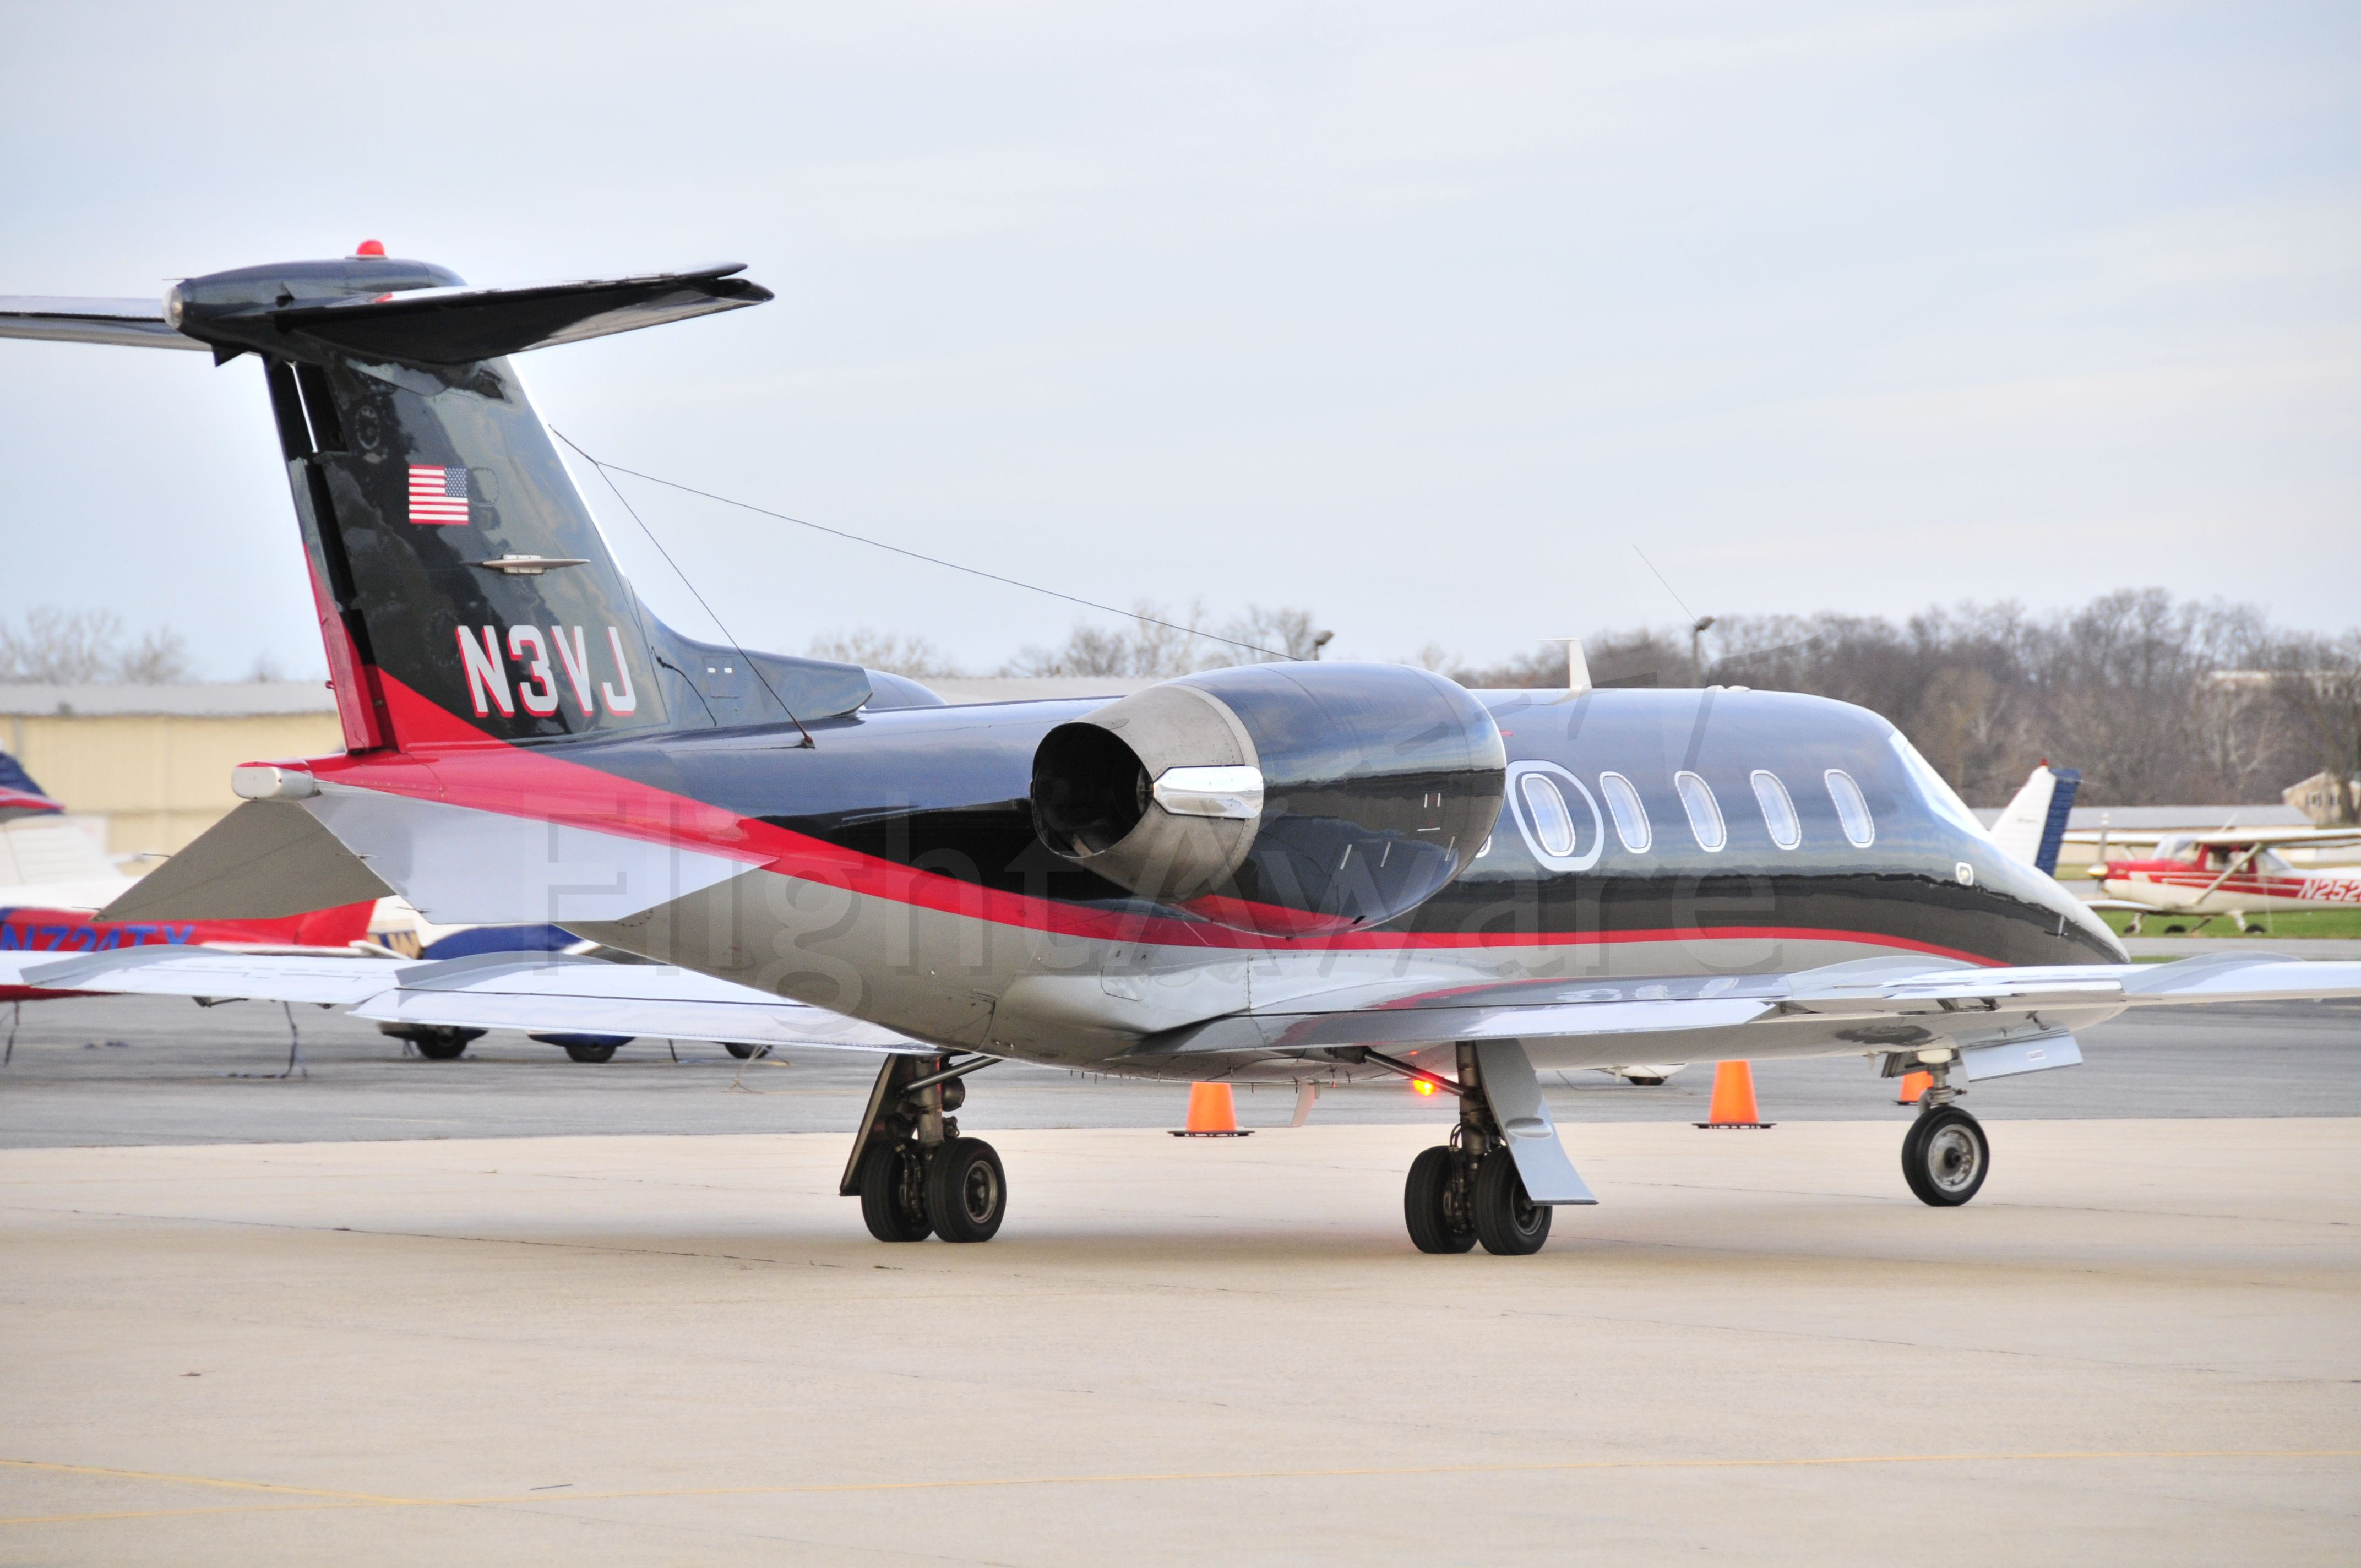 Learjet 31 (N3VJ) - Seen at KFDK on 11/29/2009.      a href=http://discussions.flightaware.com/profile.php?mode=viewprofile&u=269247  [ concord977 profile ]/a     NEGATIVE VOTE COURTESY OF SHREVEPORT, LOUISIANA USER WHOS RATED OVER 70 OF MY PHOTOS AS POOR.